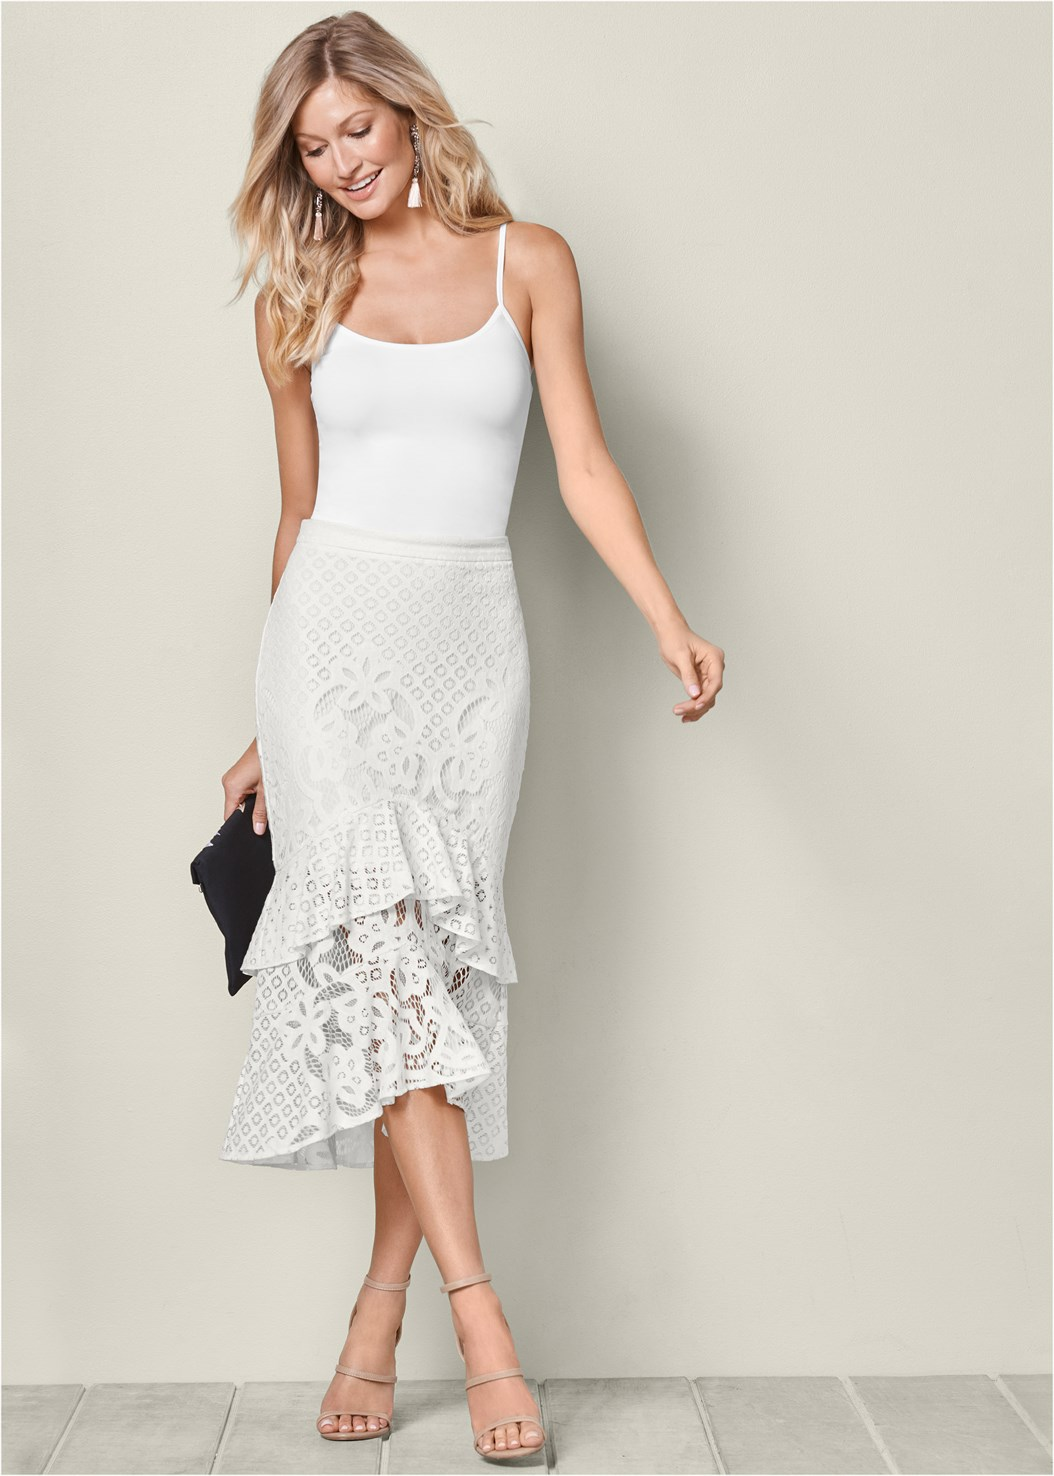 Lace Ruffle Midi Skirt,Ribbed Long Sleeve Top,High Heel Strappy Sandals